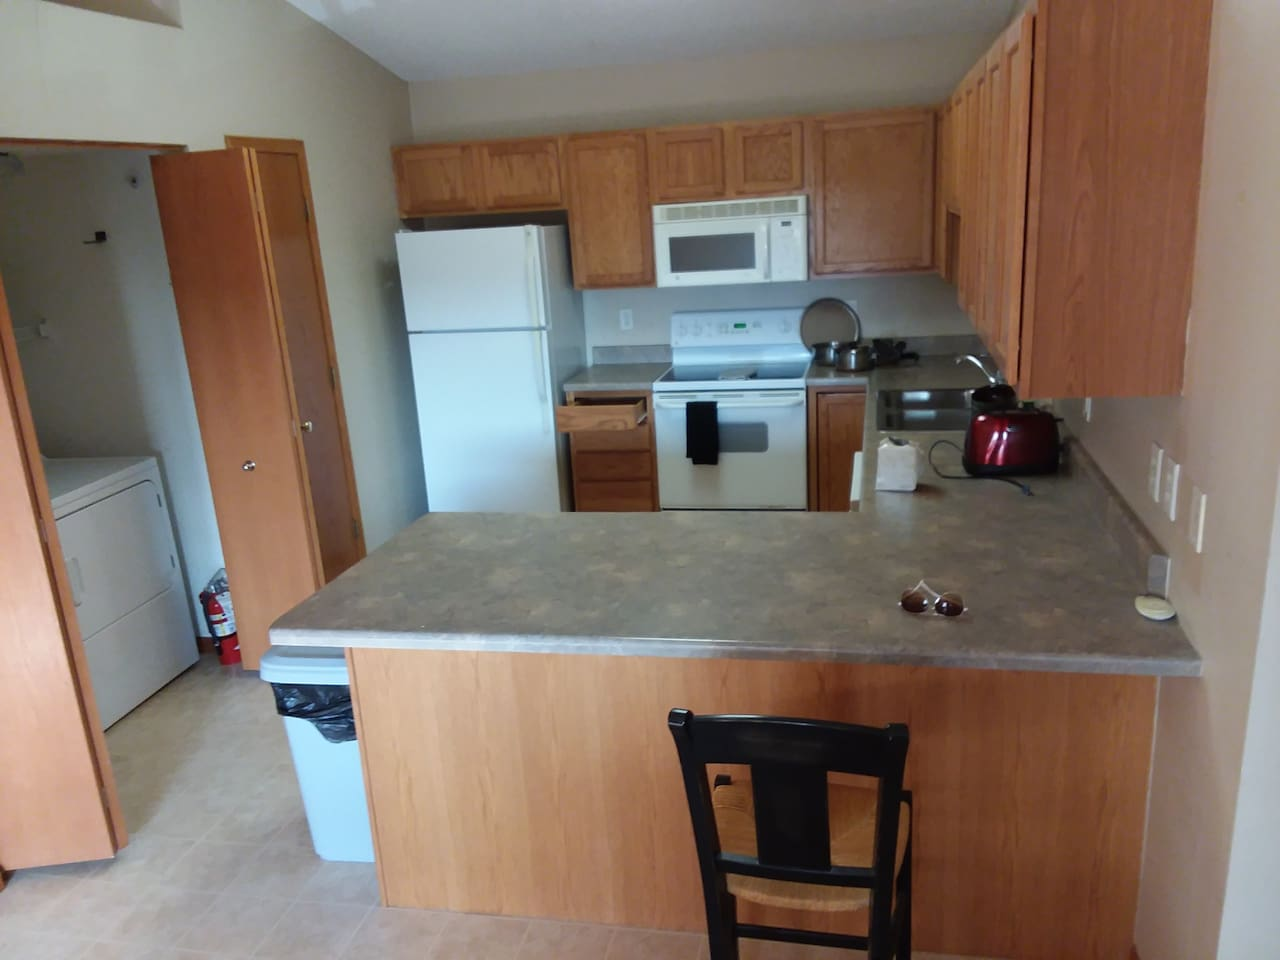 full kitchen with breakfast bar and pots and pans and silverware and dishes, toaster, full fridge, and washer and dryer,